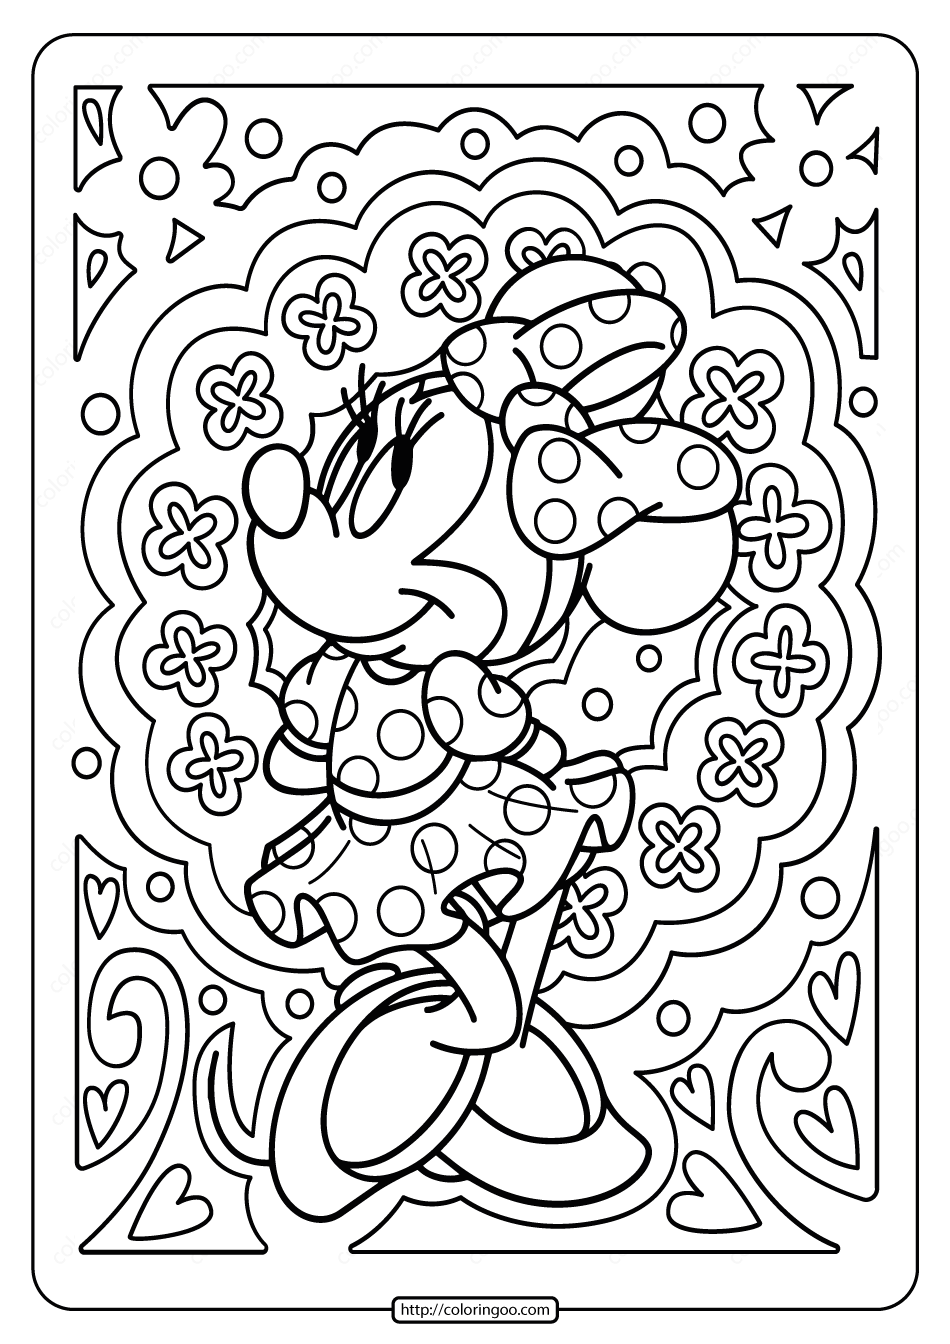 Printable Disney Minnie Mouse Pdf Coloring Page in 2020 ...